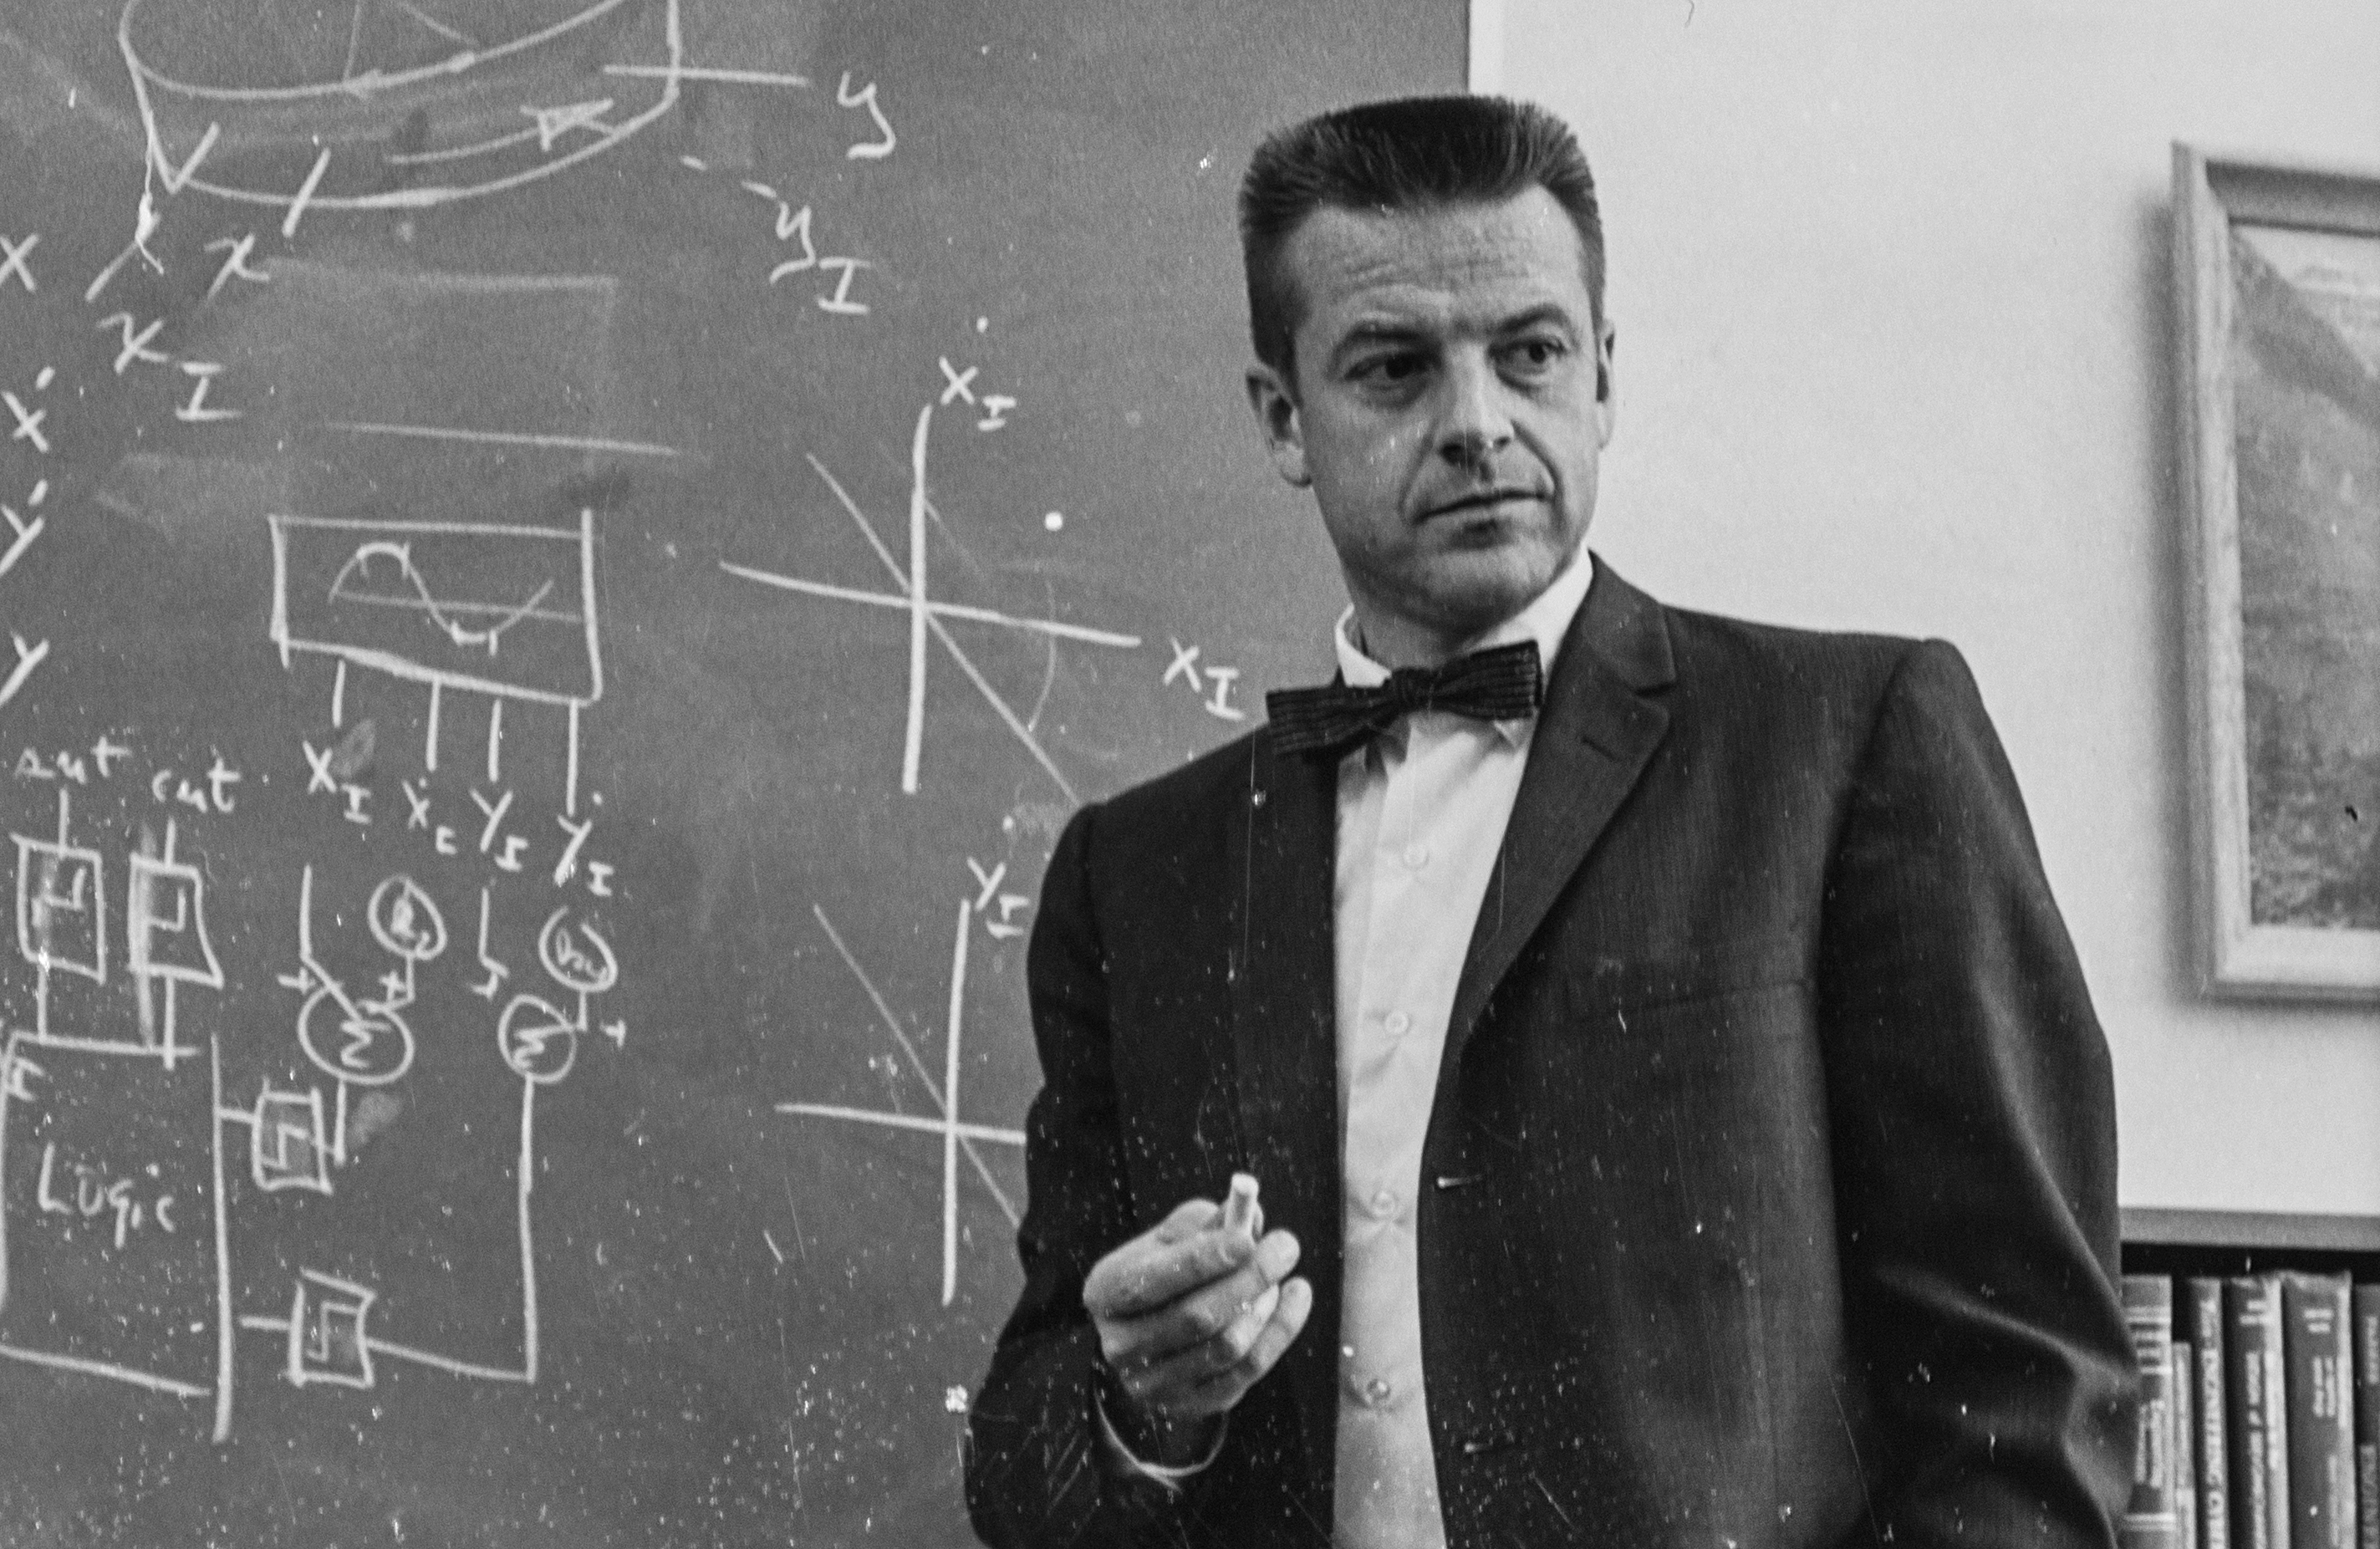 Historic photo of Robert Cannon at chalkboard with mathematical formulas